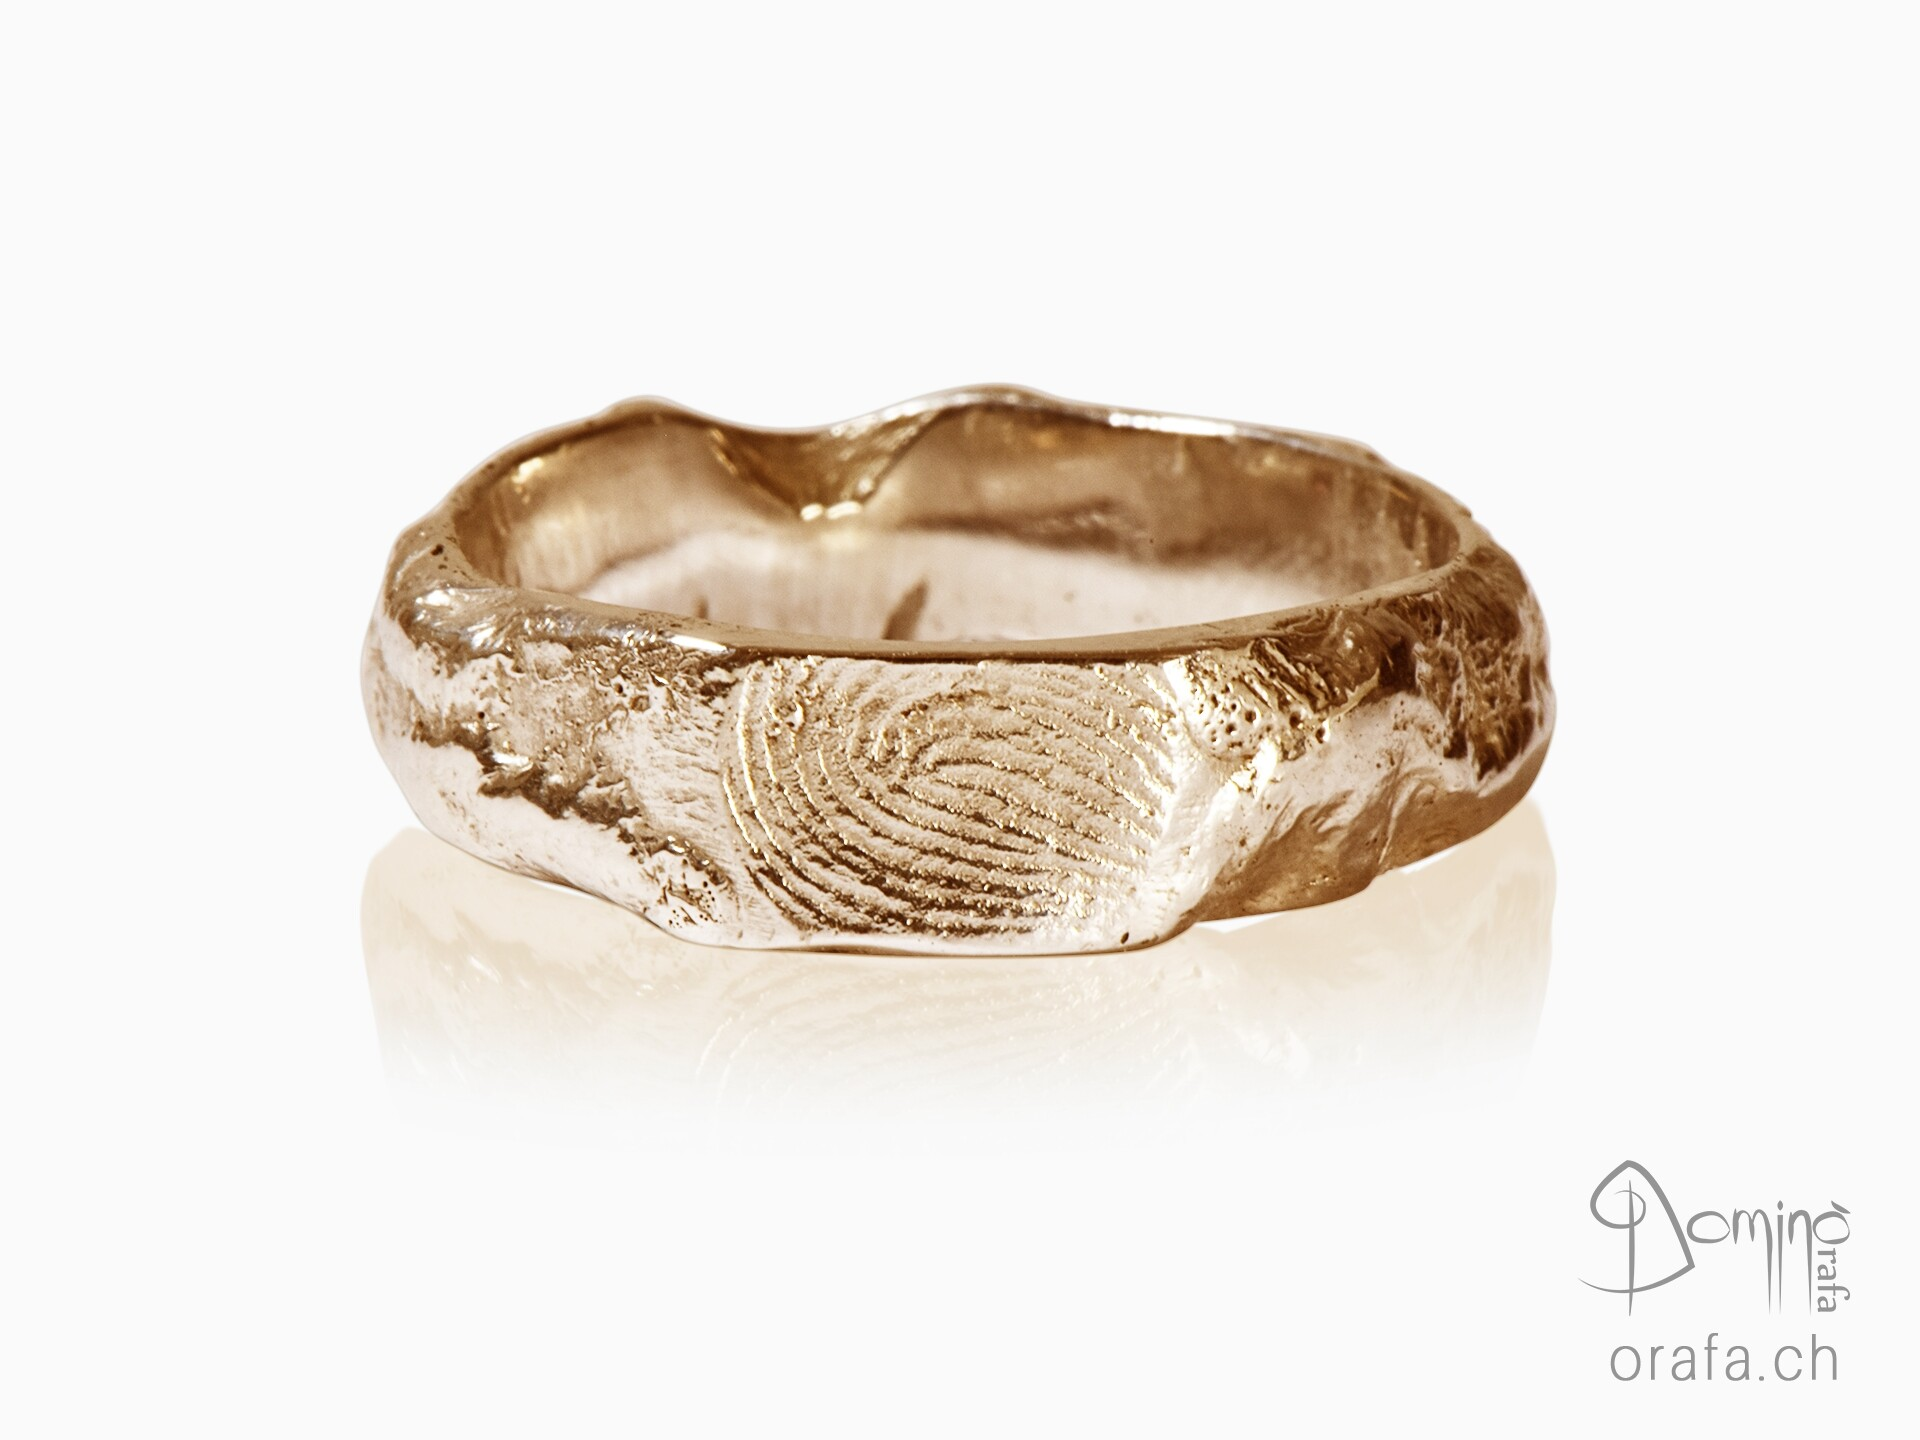 Fingerprint Roccia rings